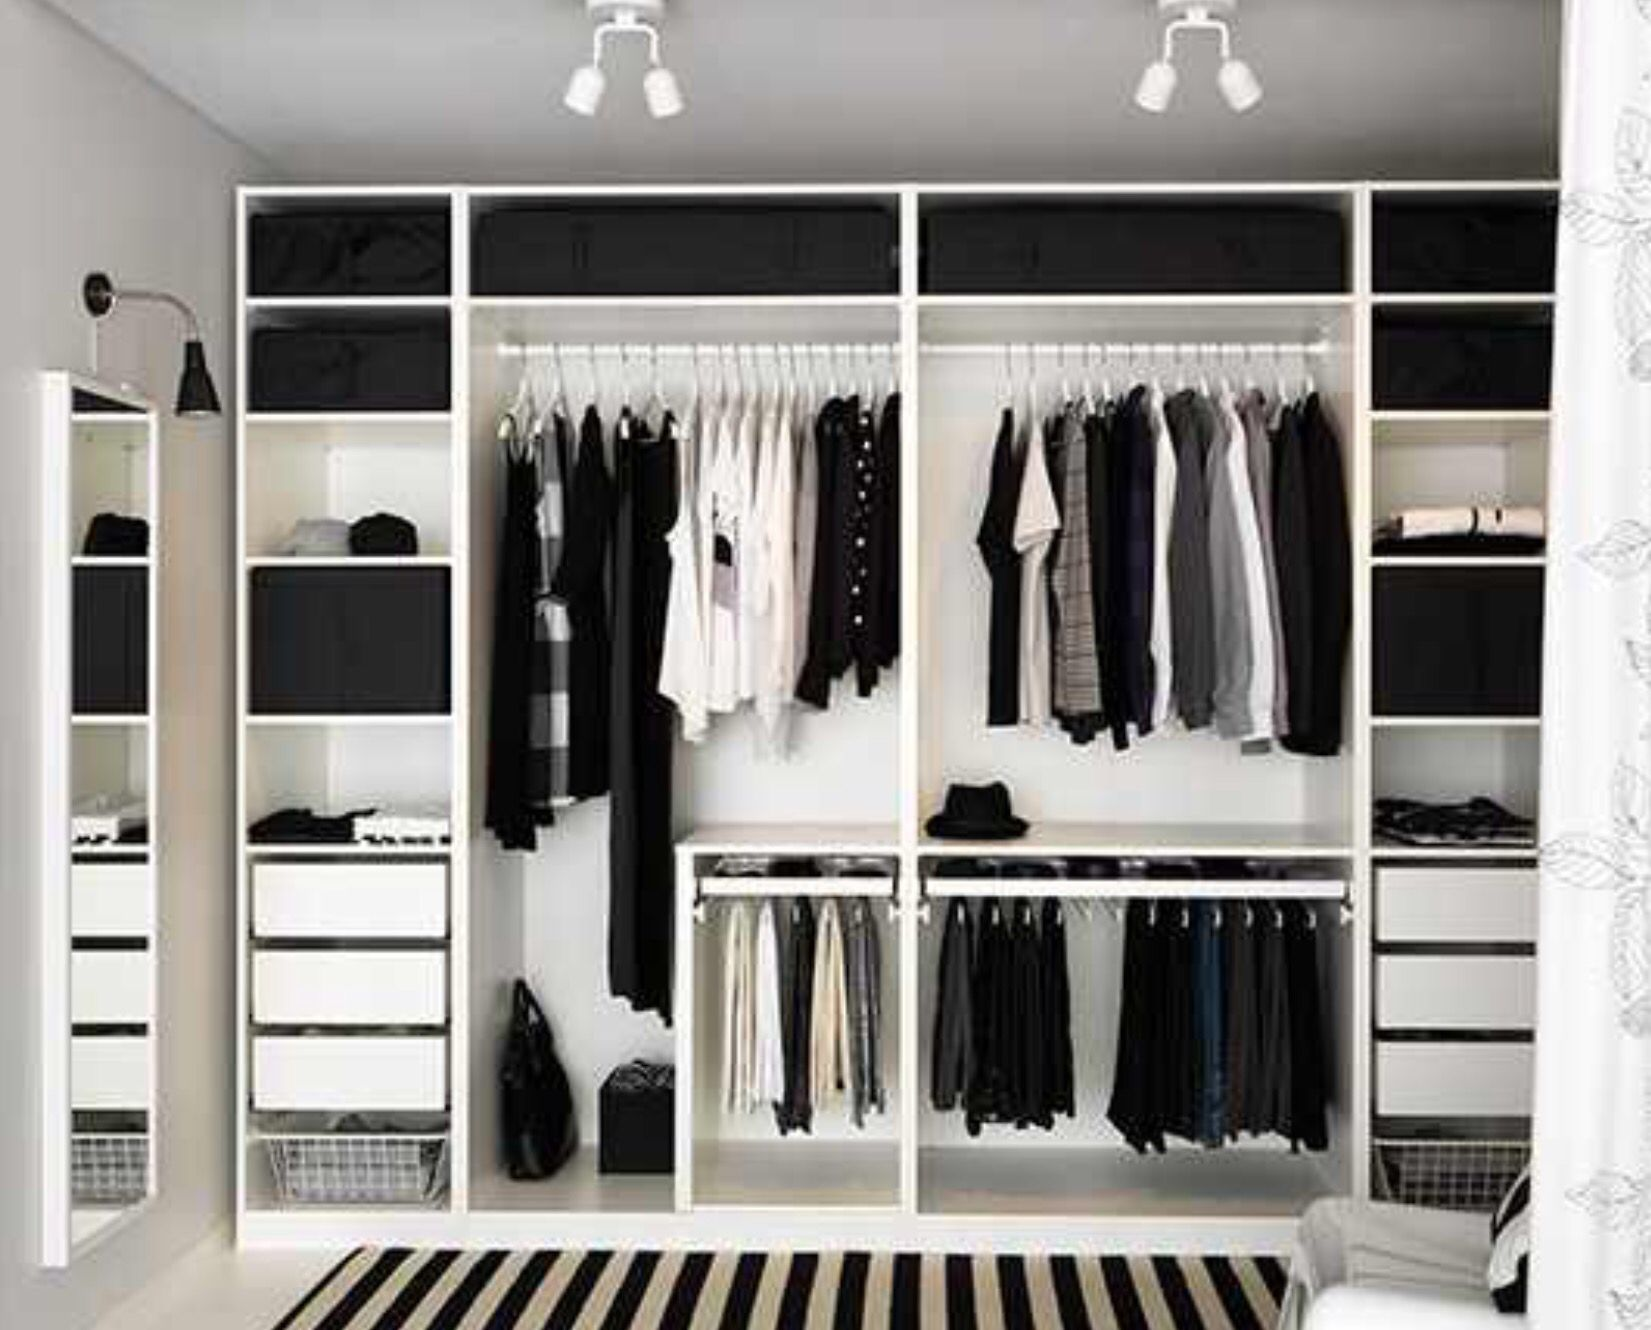 ikea pax closet pinterest chambres rangement et garde robe. Black Bedroom Furniture Sets. Home Design Ideas